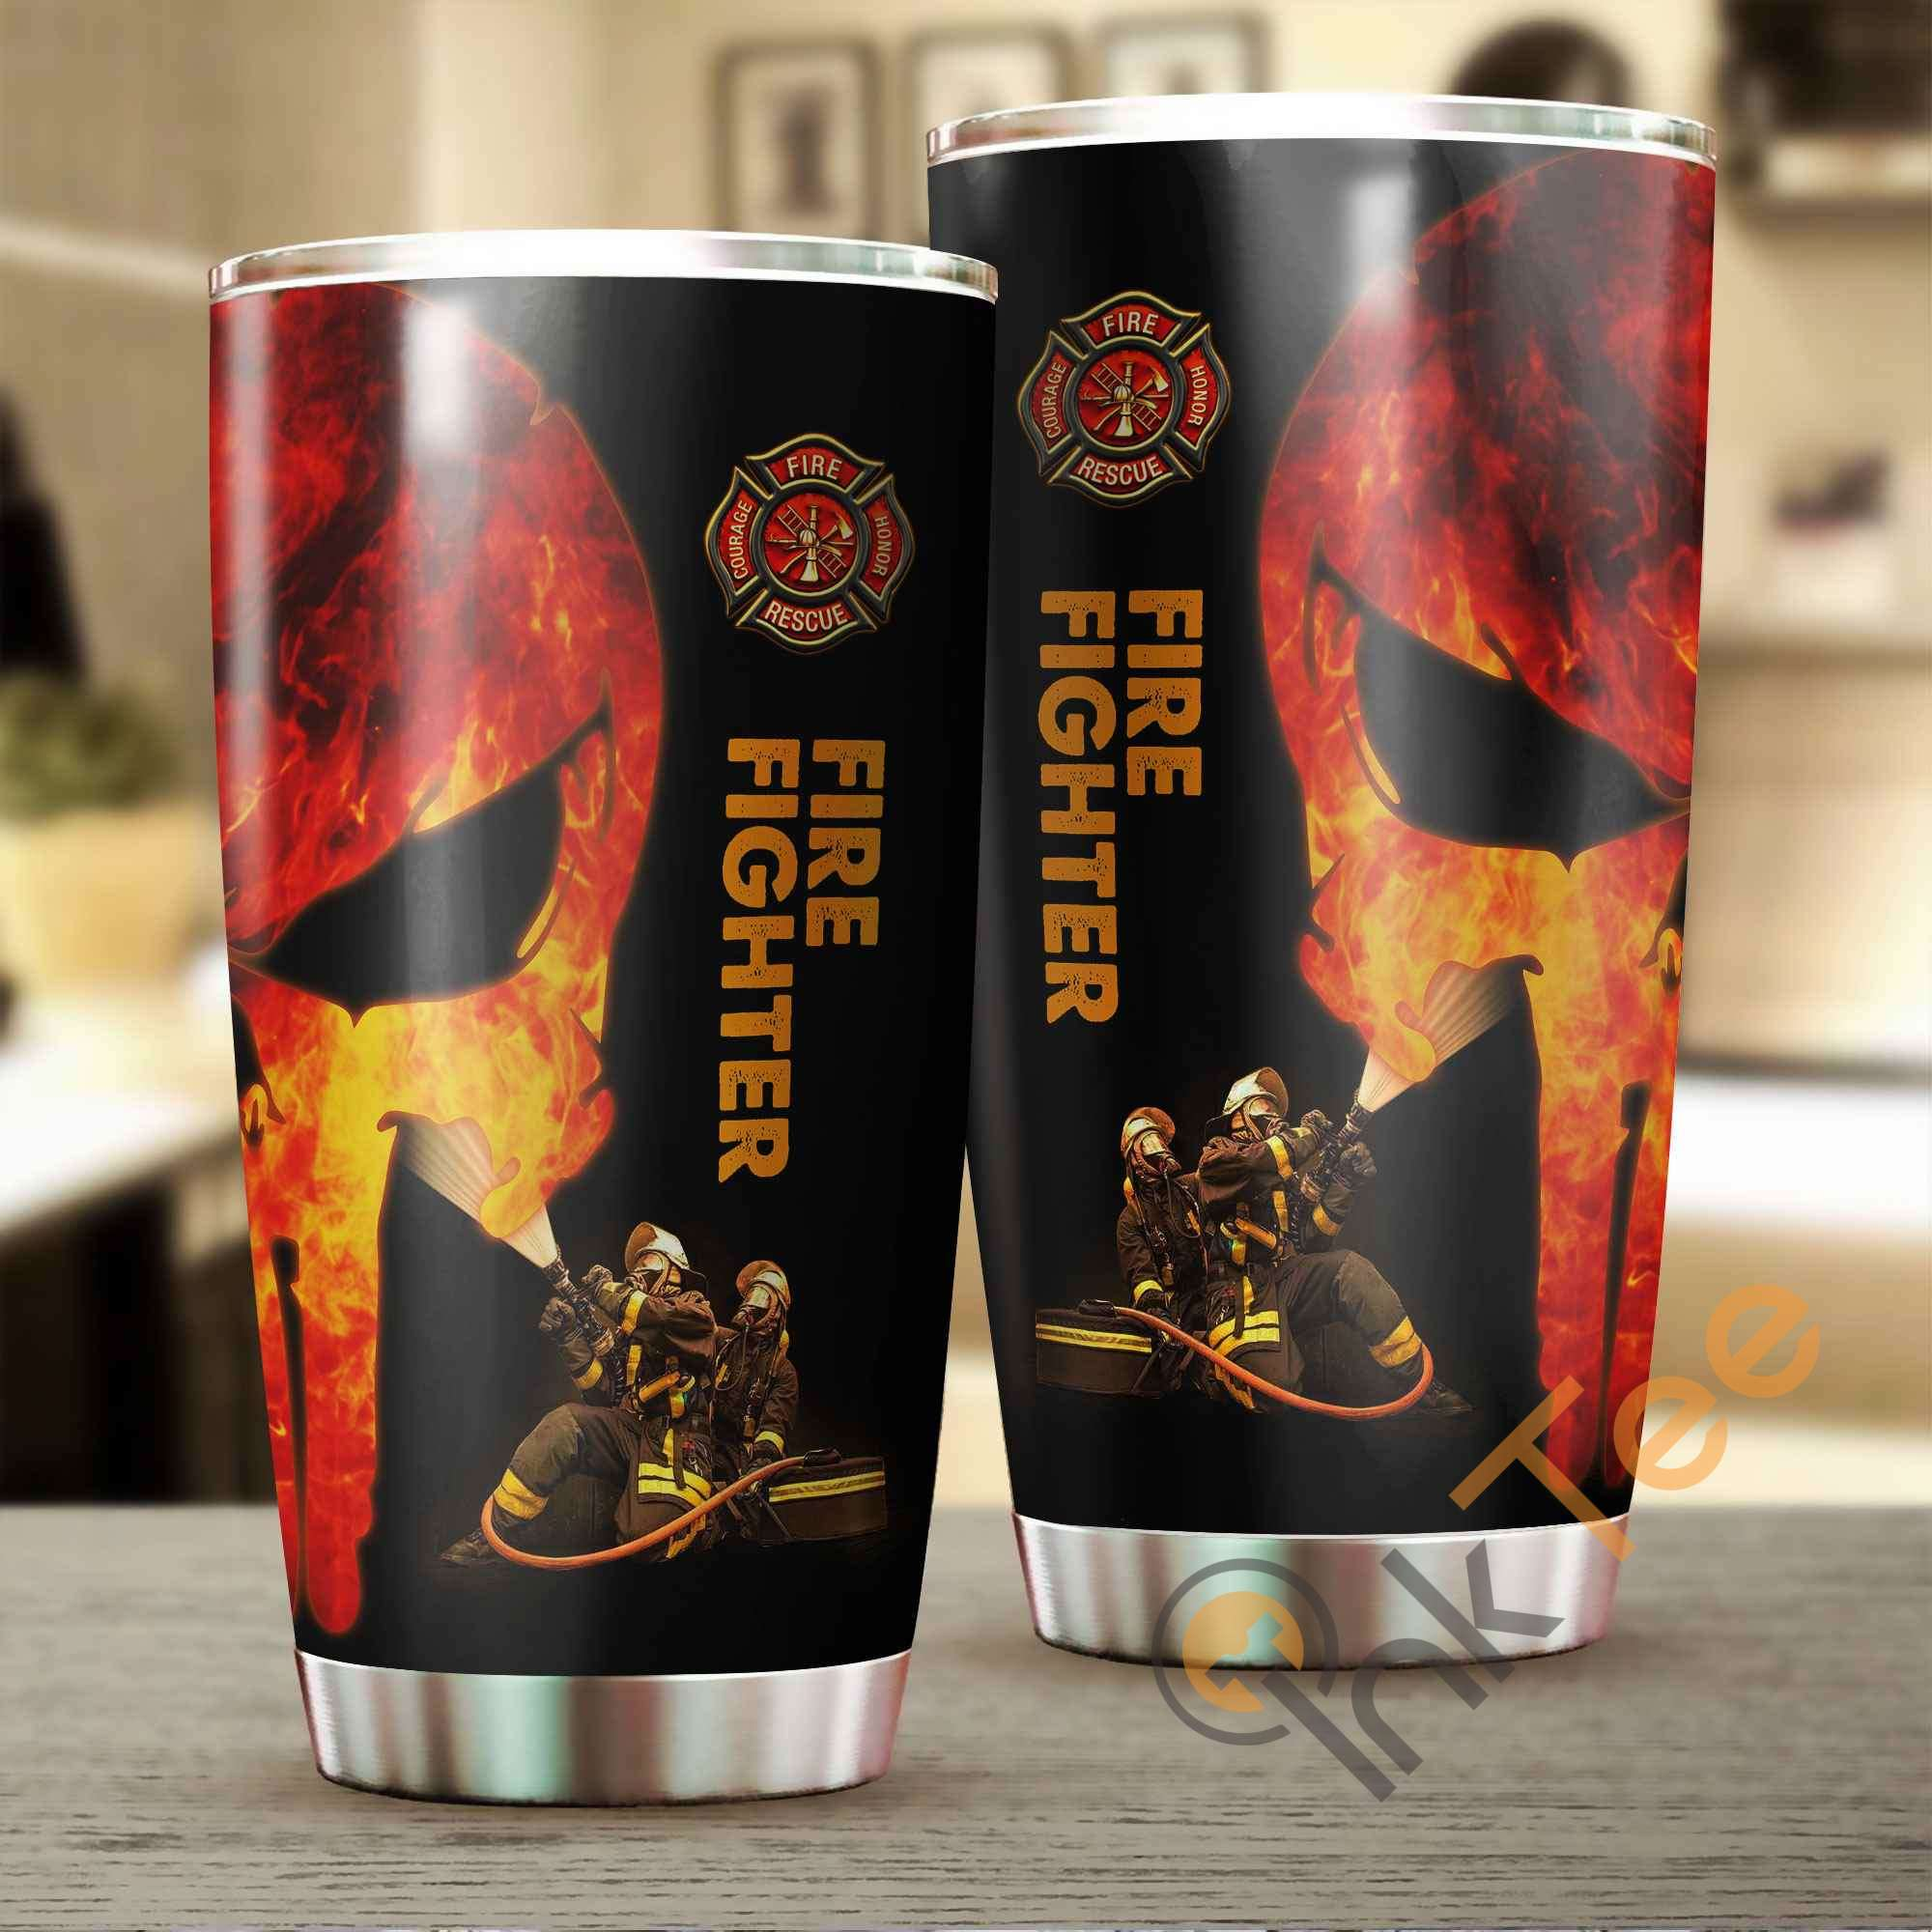 Firefighter Amazon Best Seller Sku 3271 Stainless Steel Tumbler